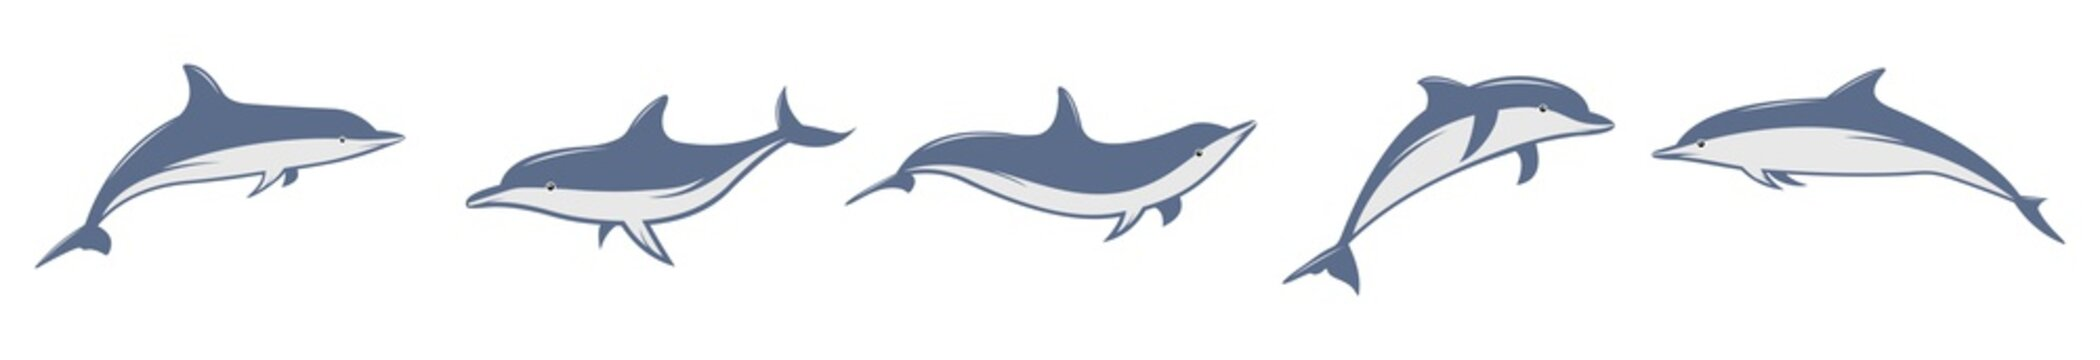 Dolphin fish animal vector icon illustration, Cute dolphins set, dolphin jumping isolated on white background